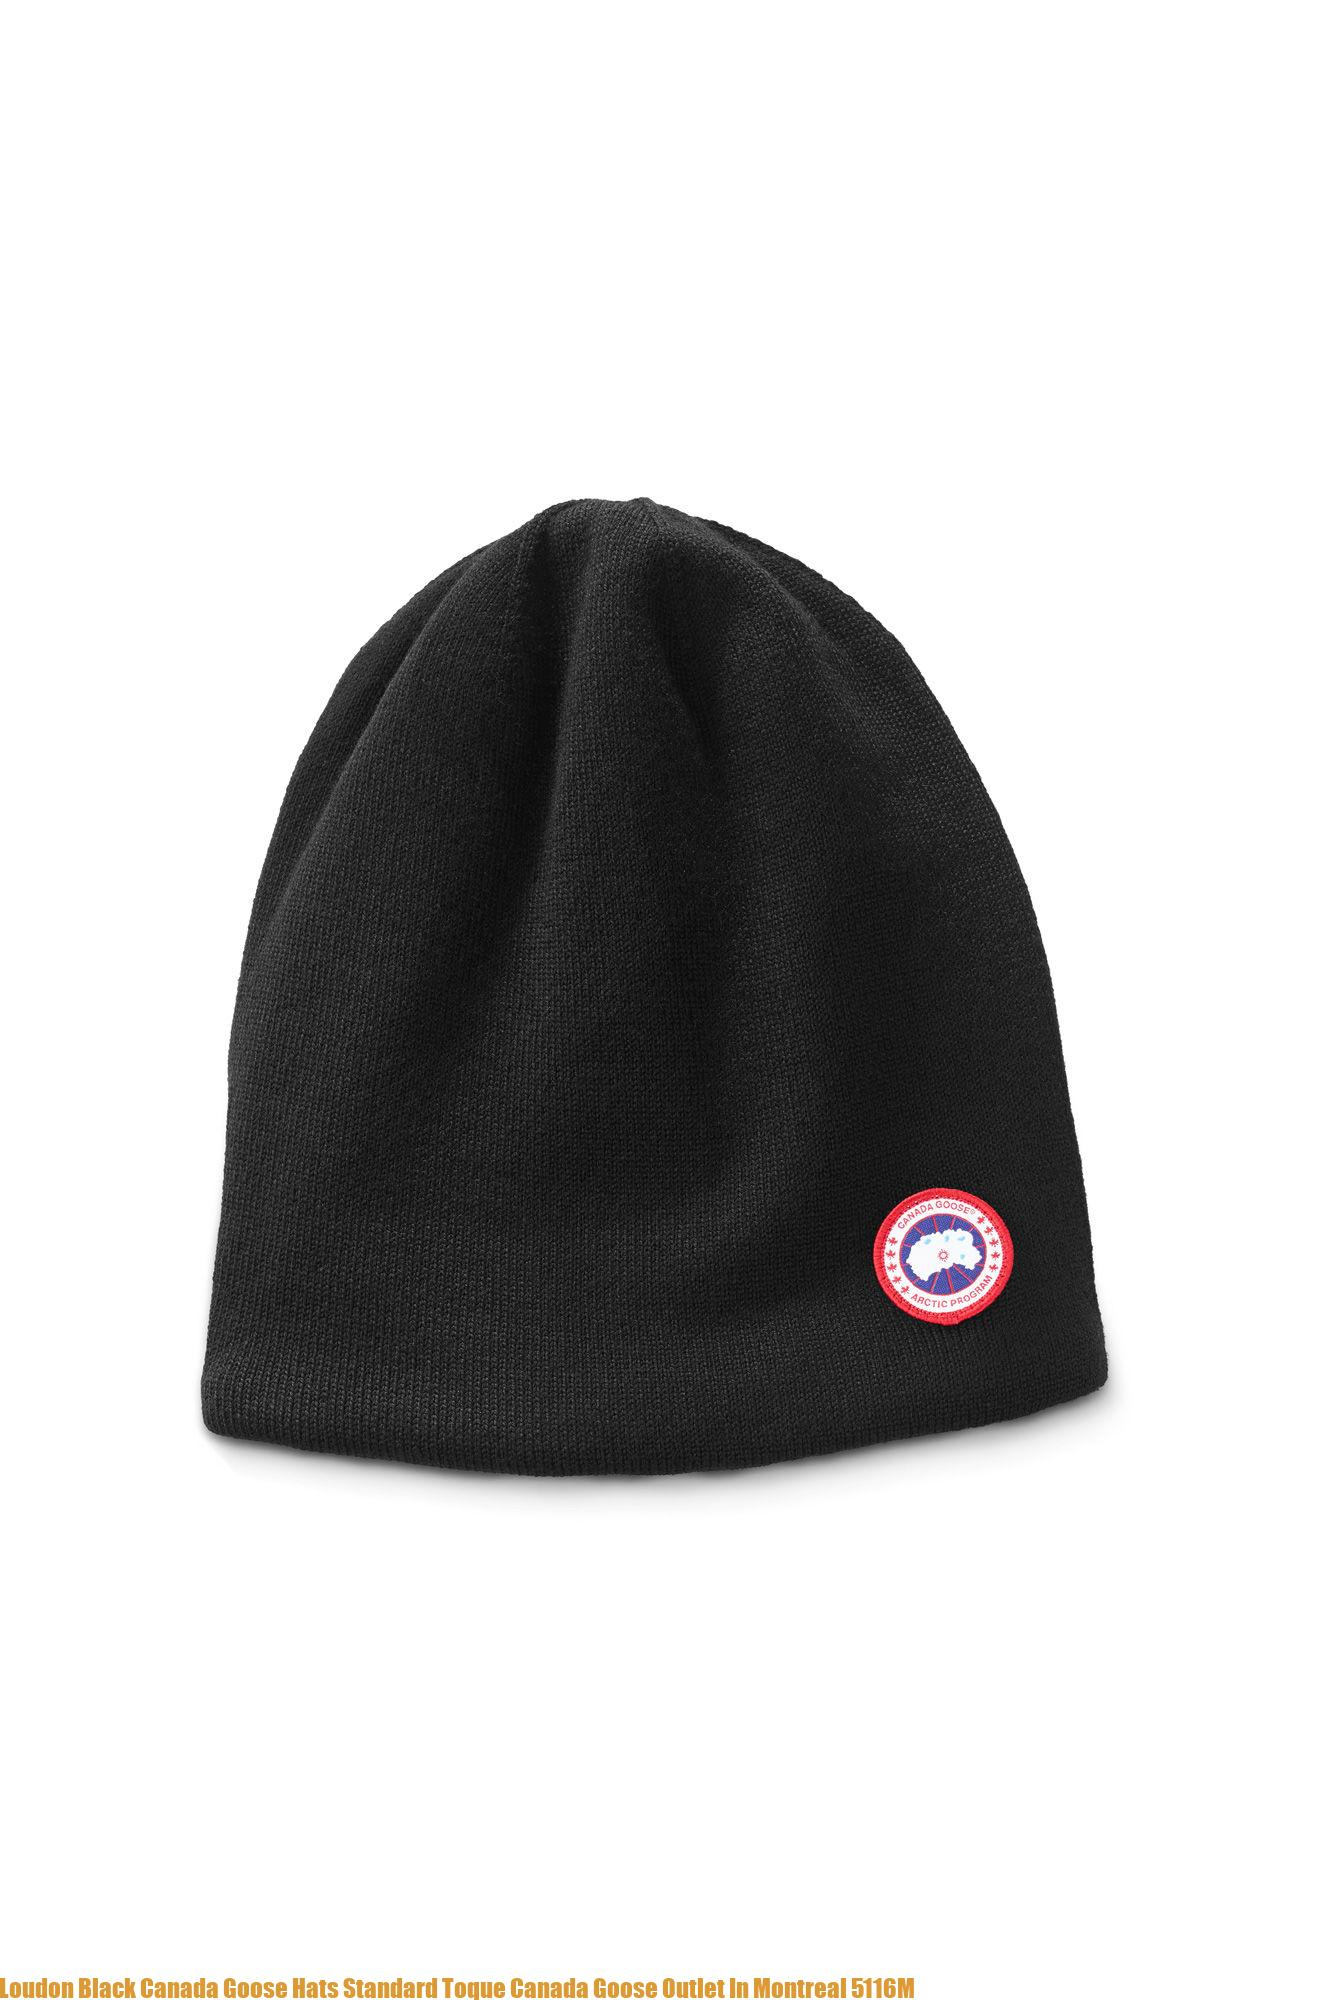 d26997dd5120c Loudon Black Canada Goose Hats Standard Toque Canada Goose Outlet In  Montreal 5116M – Cheap Canada Goose Outlet Down Jackets & Parkas On Sale  75% Off